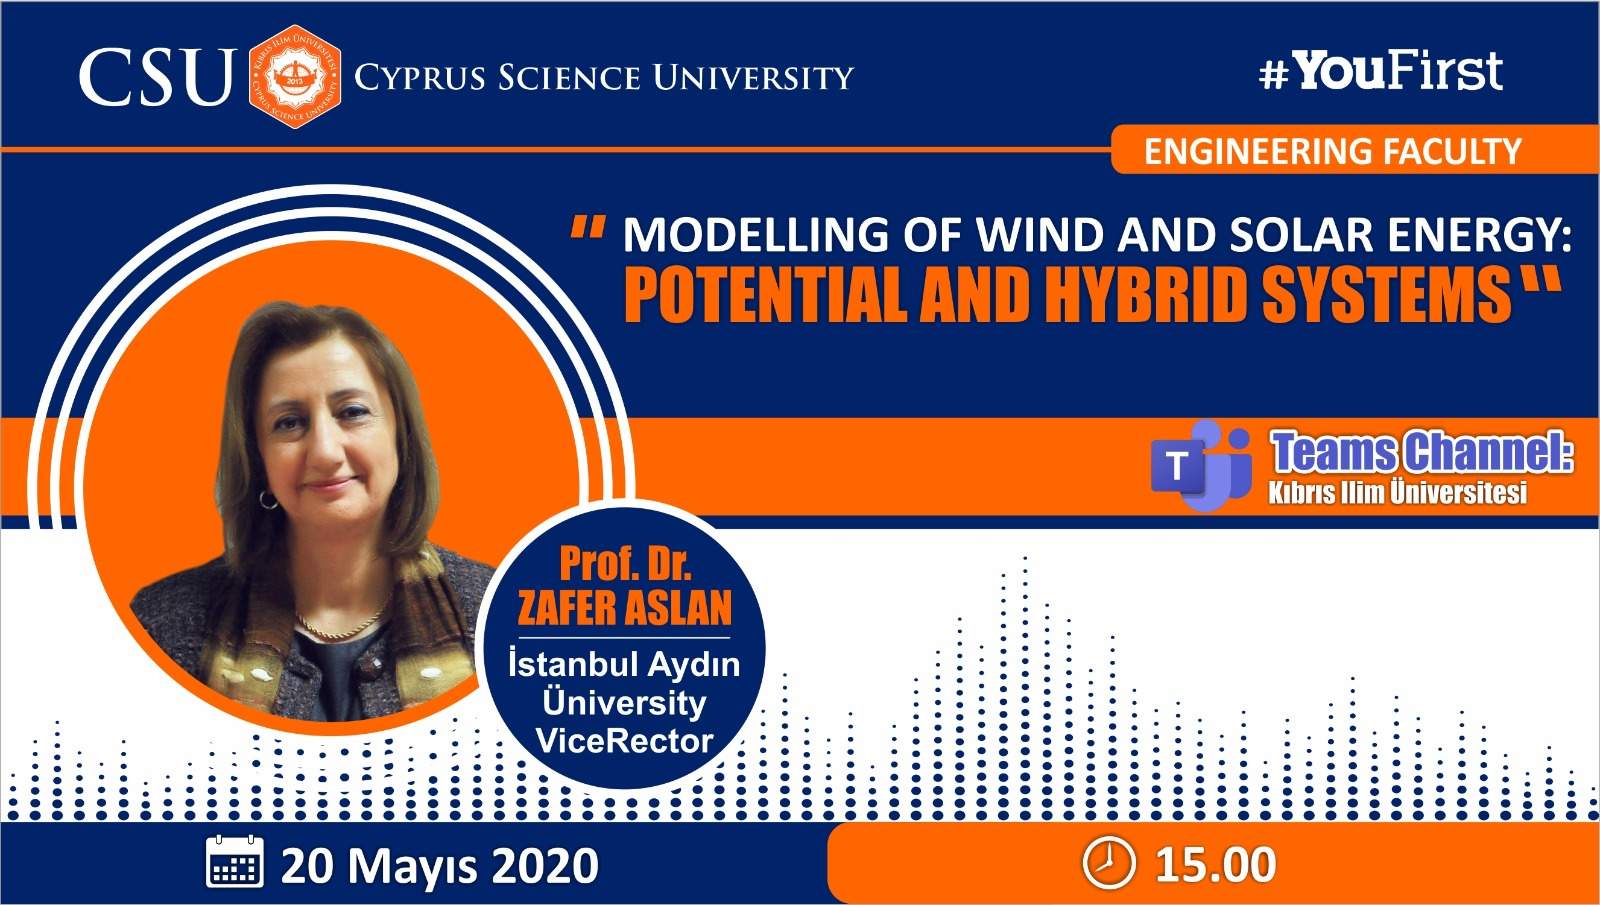 Modelling of Wind and Solar Energy: Potential And Hybrid Systems